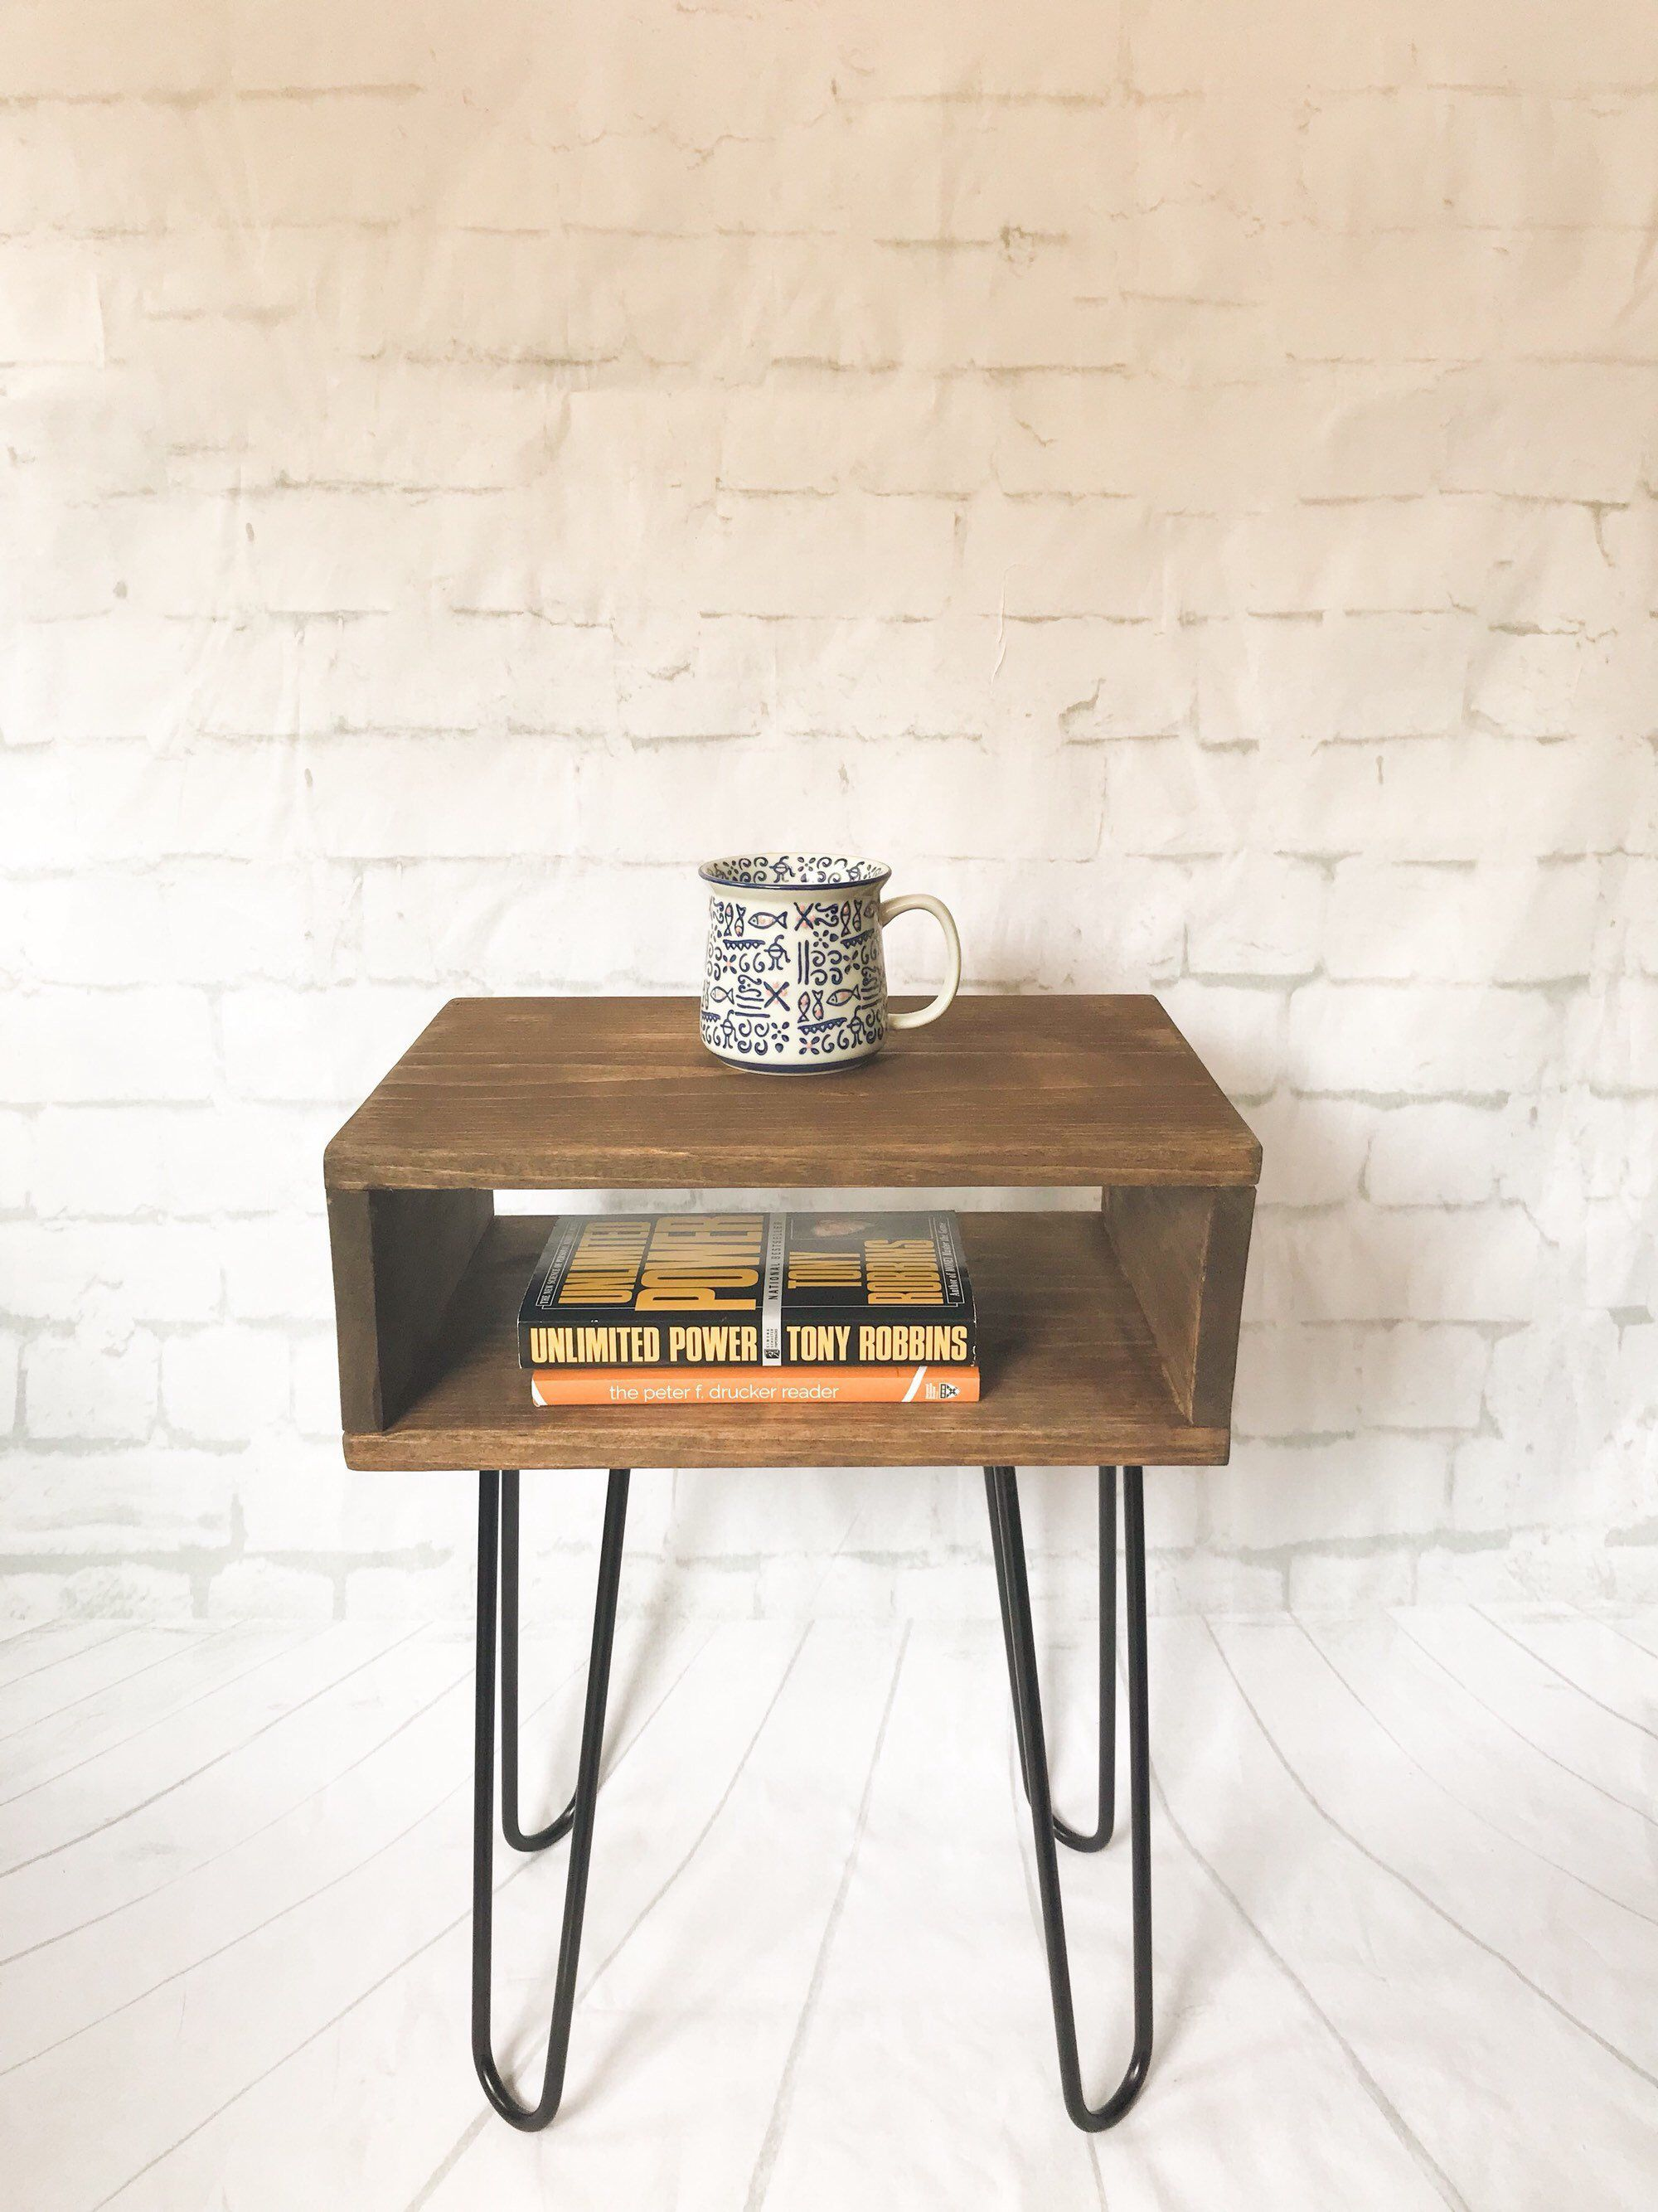 Handmade Real Wood Nightstand Bed Side Table Mid Century Modern Industrial Hairpin Leg End Tables Small Nightstands Record Console Side Table Wood Mid Century Modern Coffee Table Mid Century